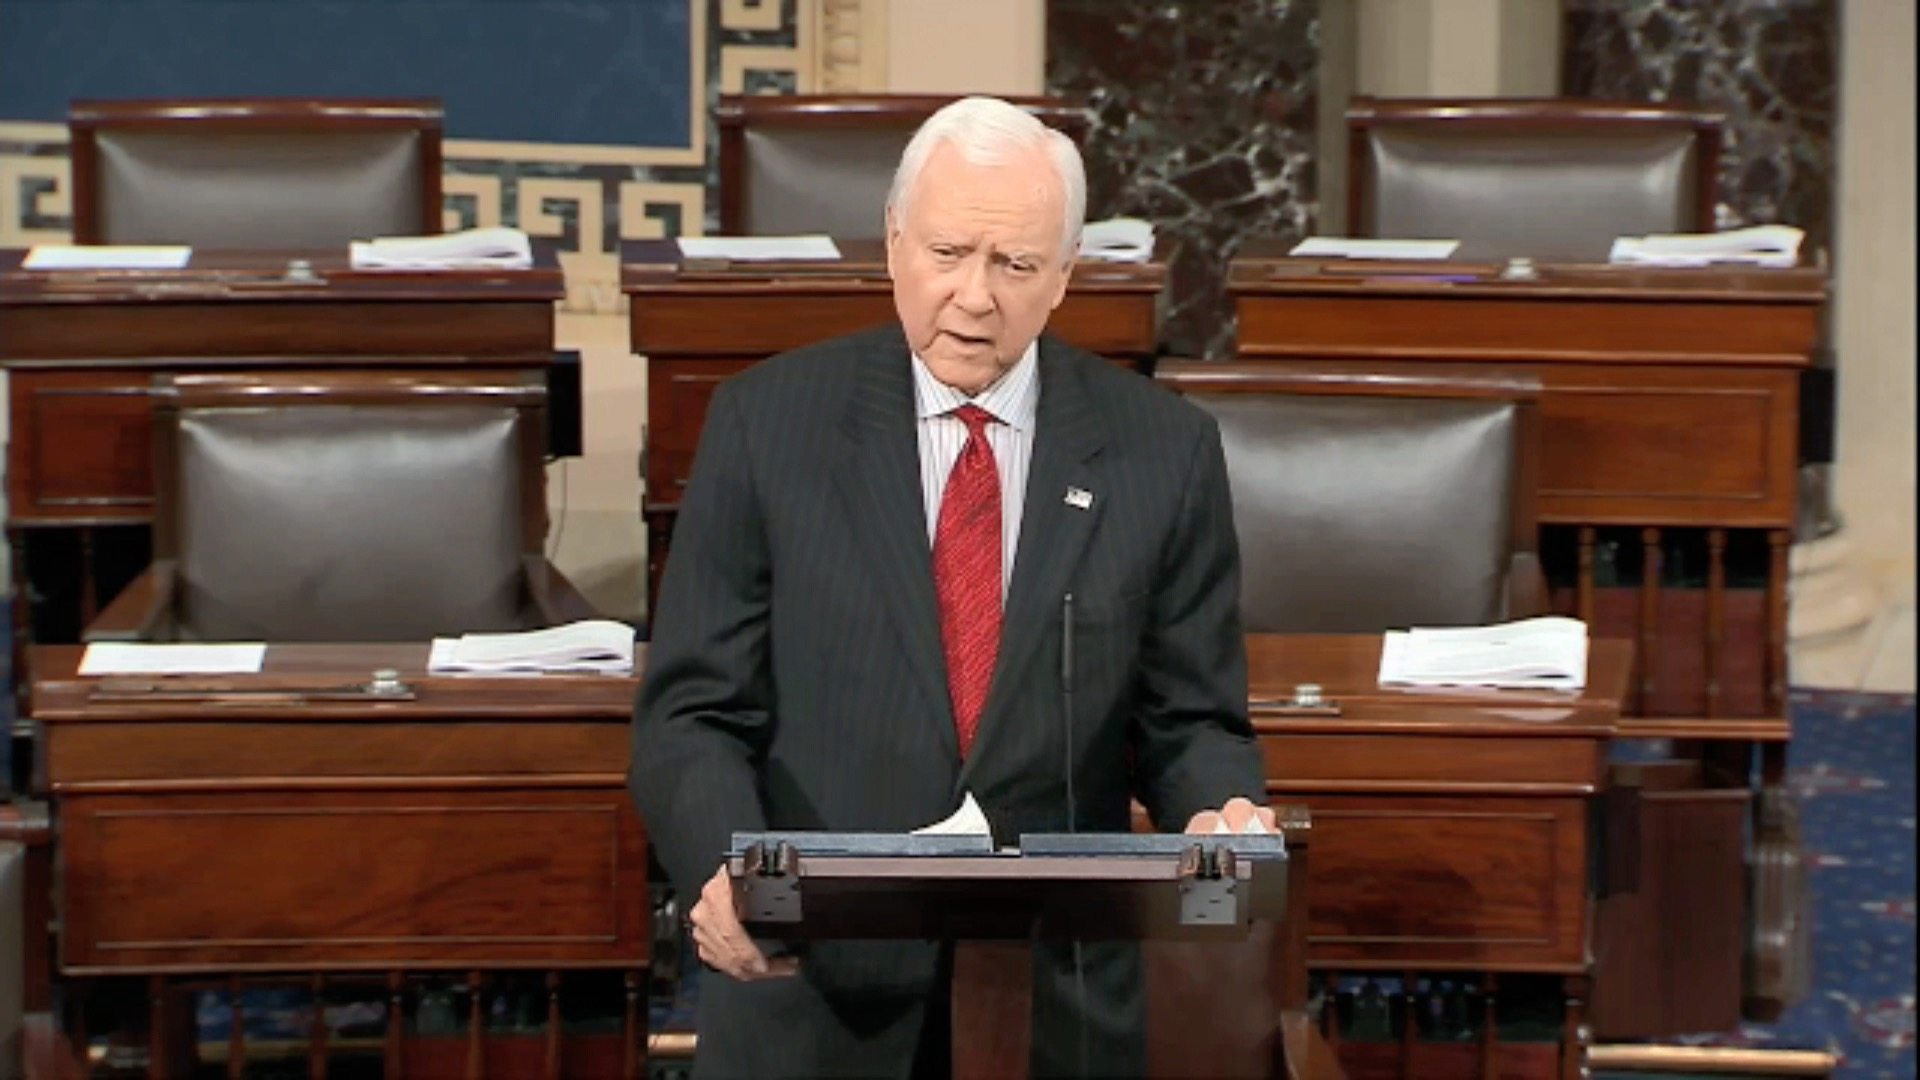 Senator Hatch Farewell Speech